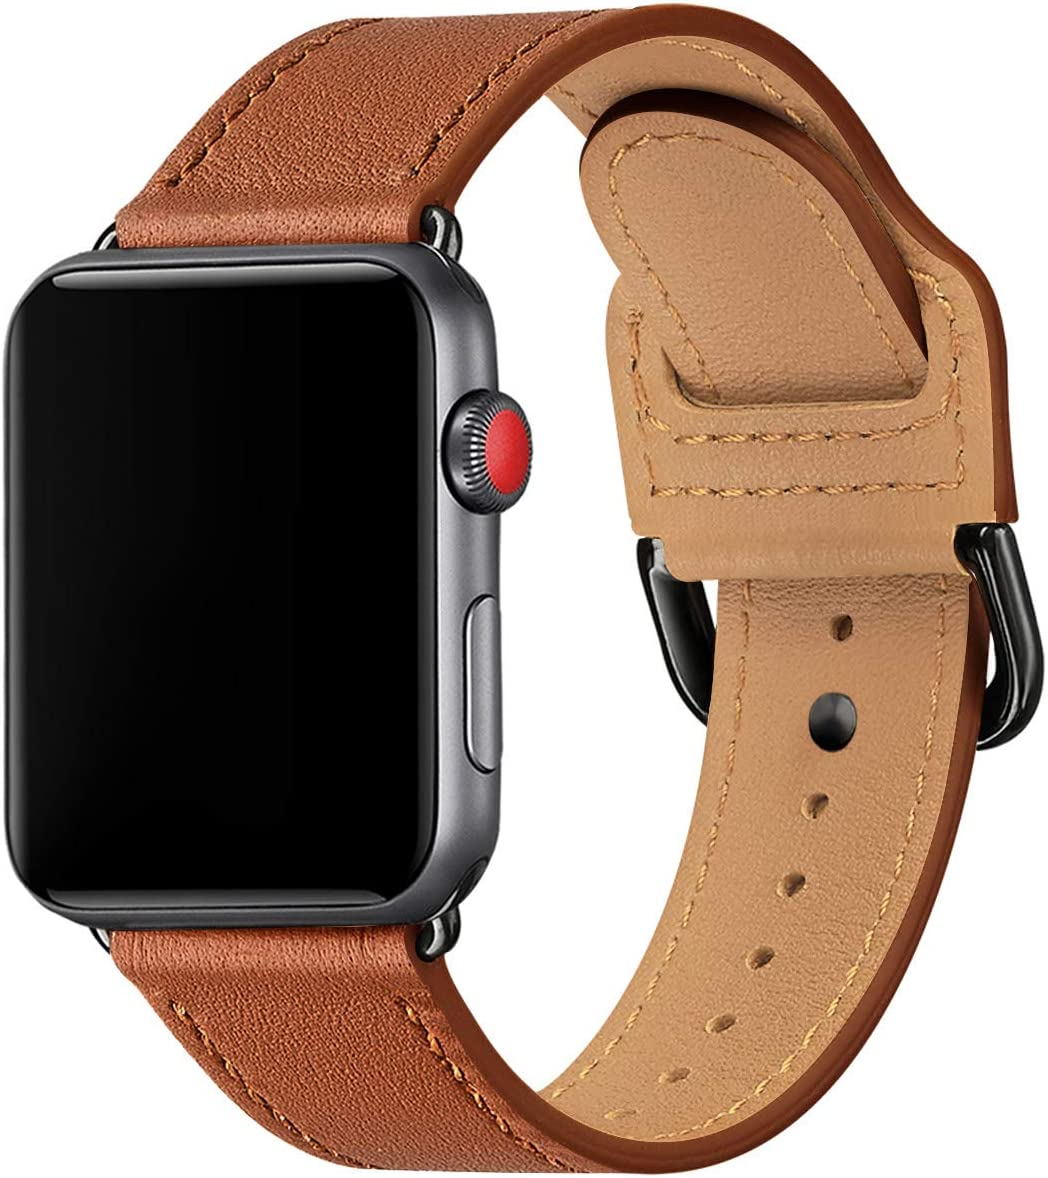 POWER PRIMACY Bands Compatible with Apple Watch Band 38mm 40mm 42mm 44mm, Top Grain Leather Smart Watch Strap Compatible for Men Women iWatch Series 6 5 4 3 2 1,SE (Brown/Black, 38mm/40mm)